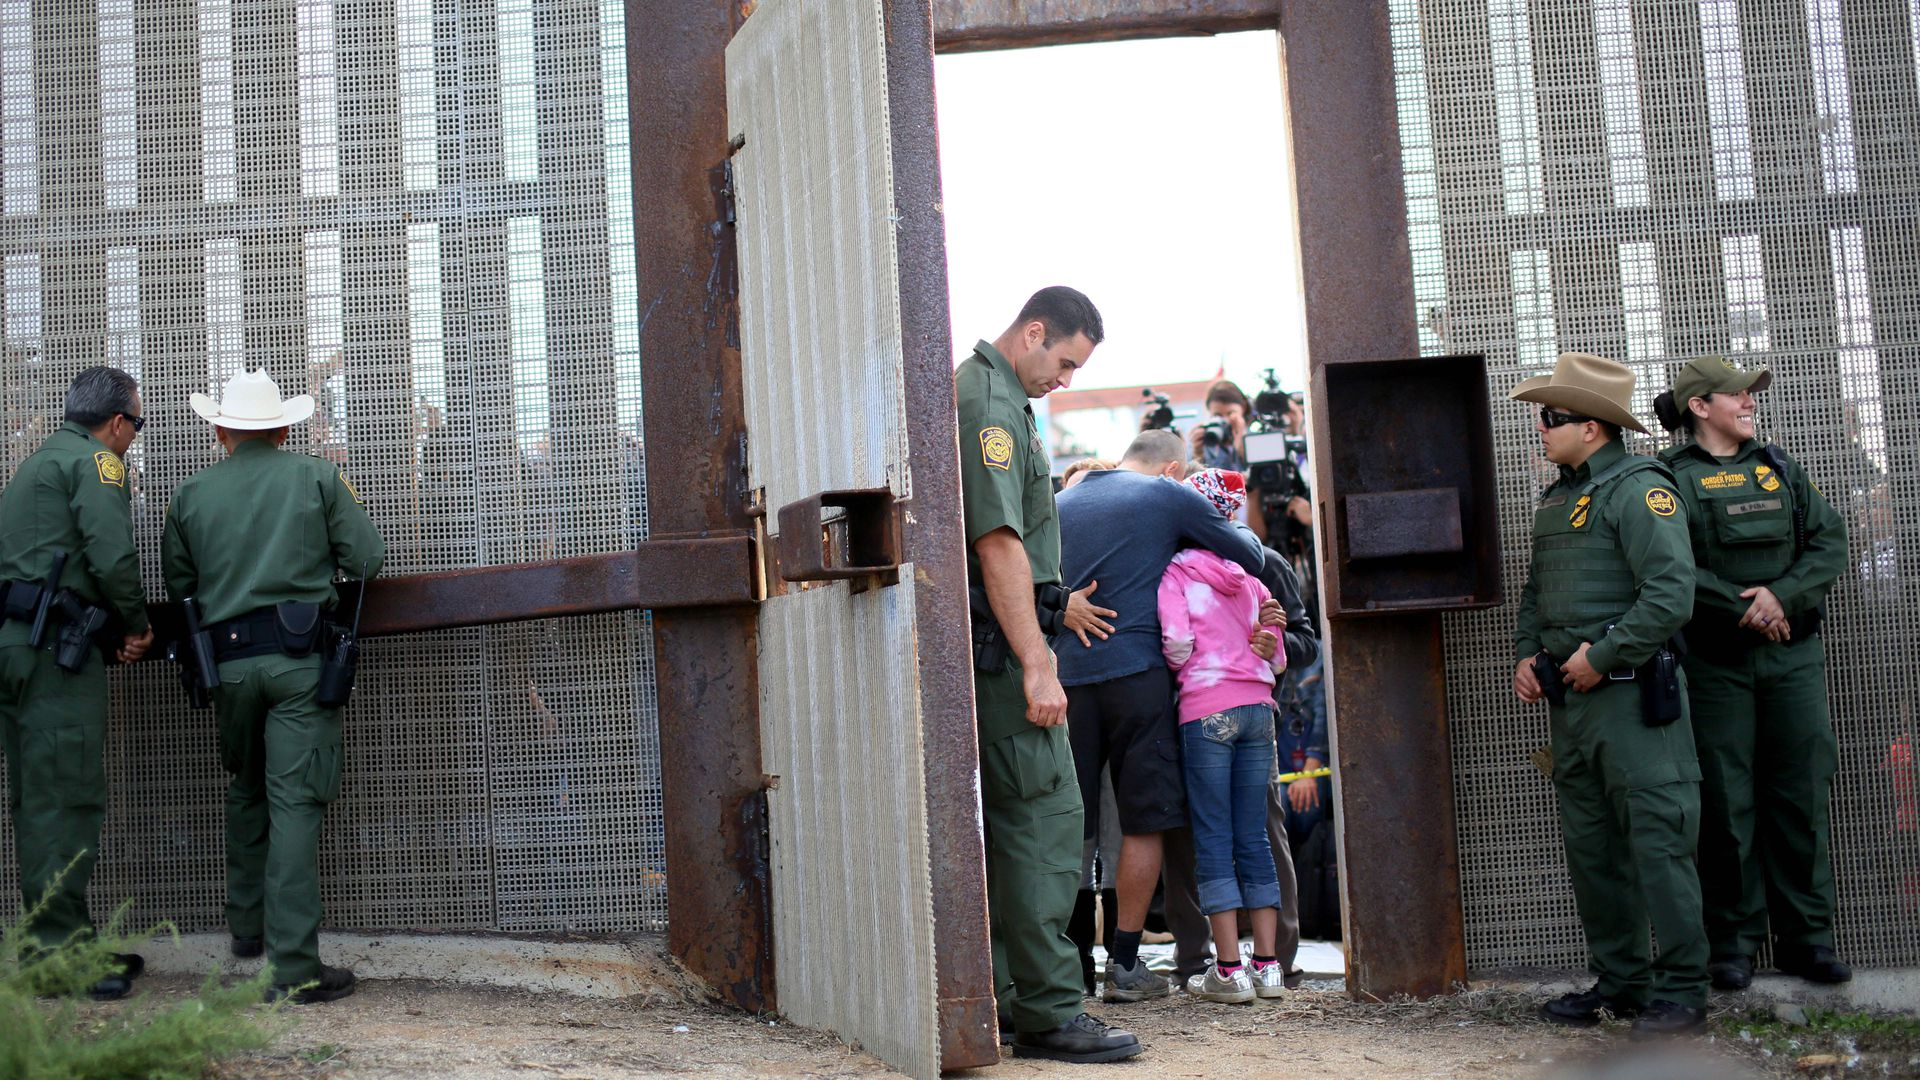 Migrants at the United States-Mexico Border